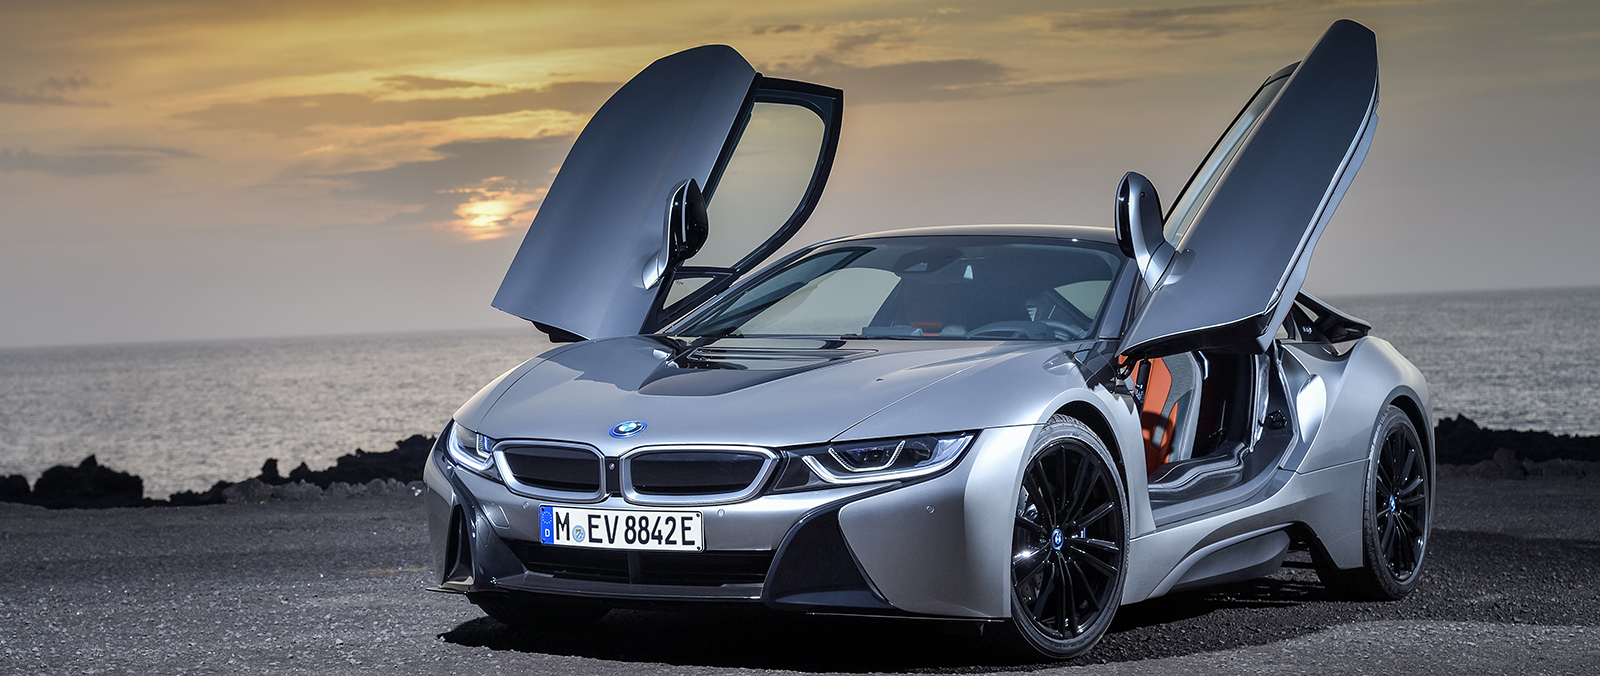 Prijzen BMW i8 Roadster en Coupe